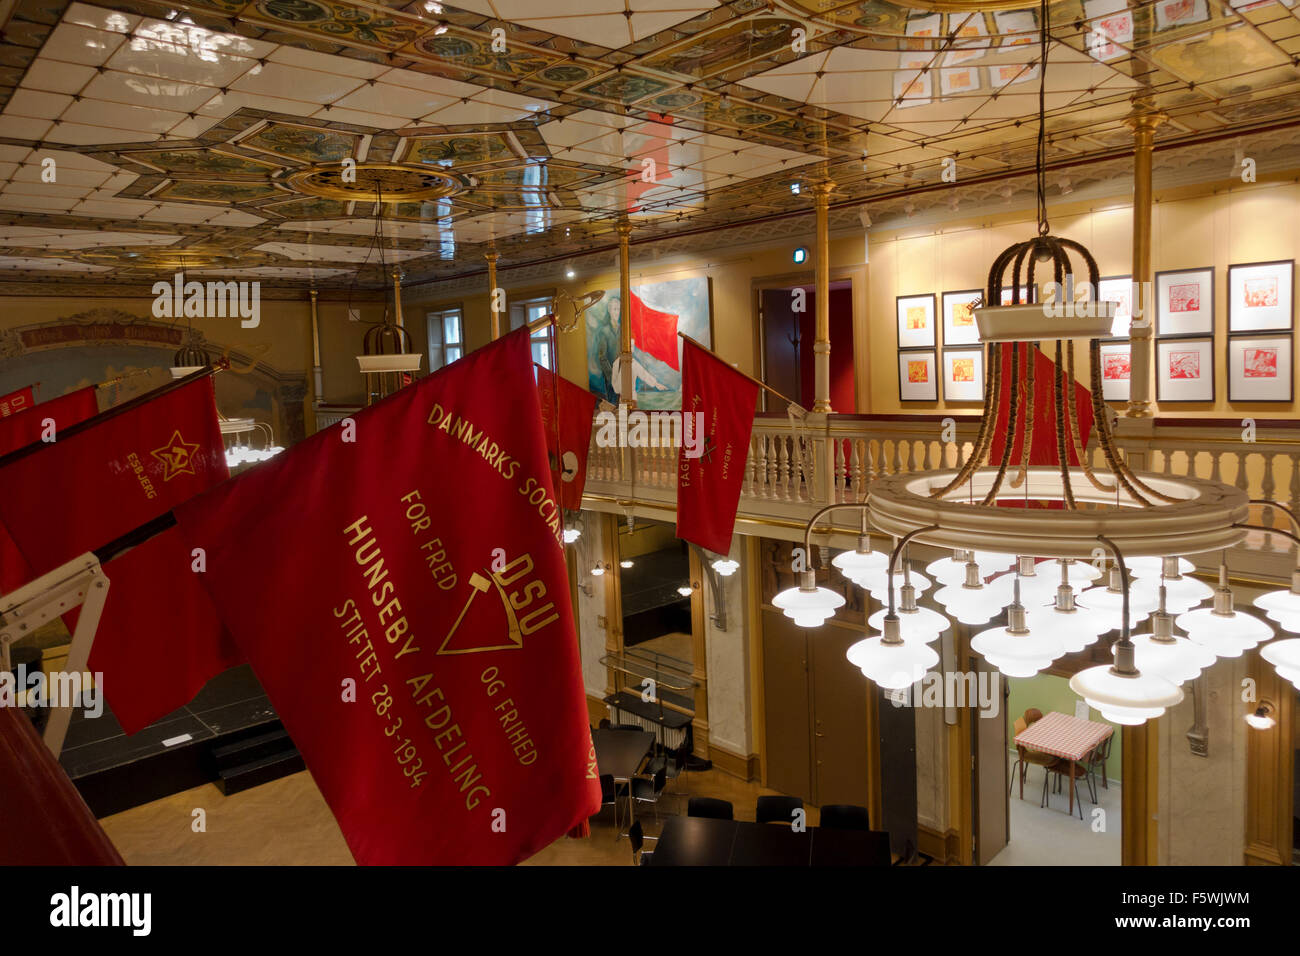 The historic assembly hall with the trade unions'  red banners in the Workers Museum (Arbejdermuseet) Copenhagen. - Stock Image